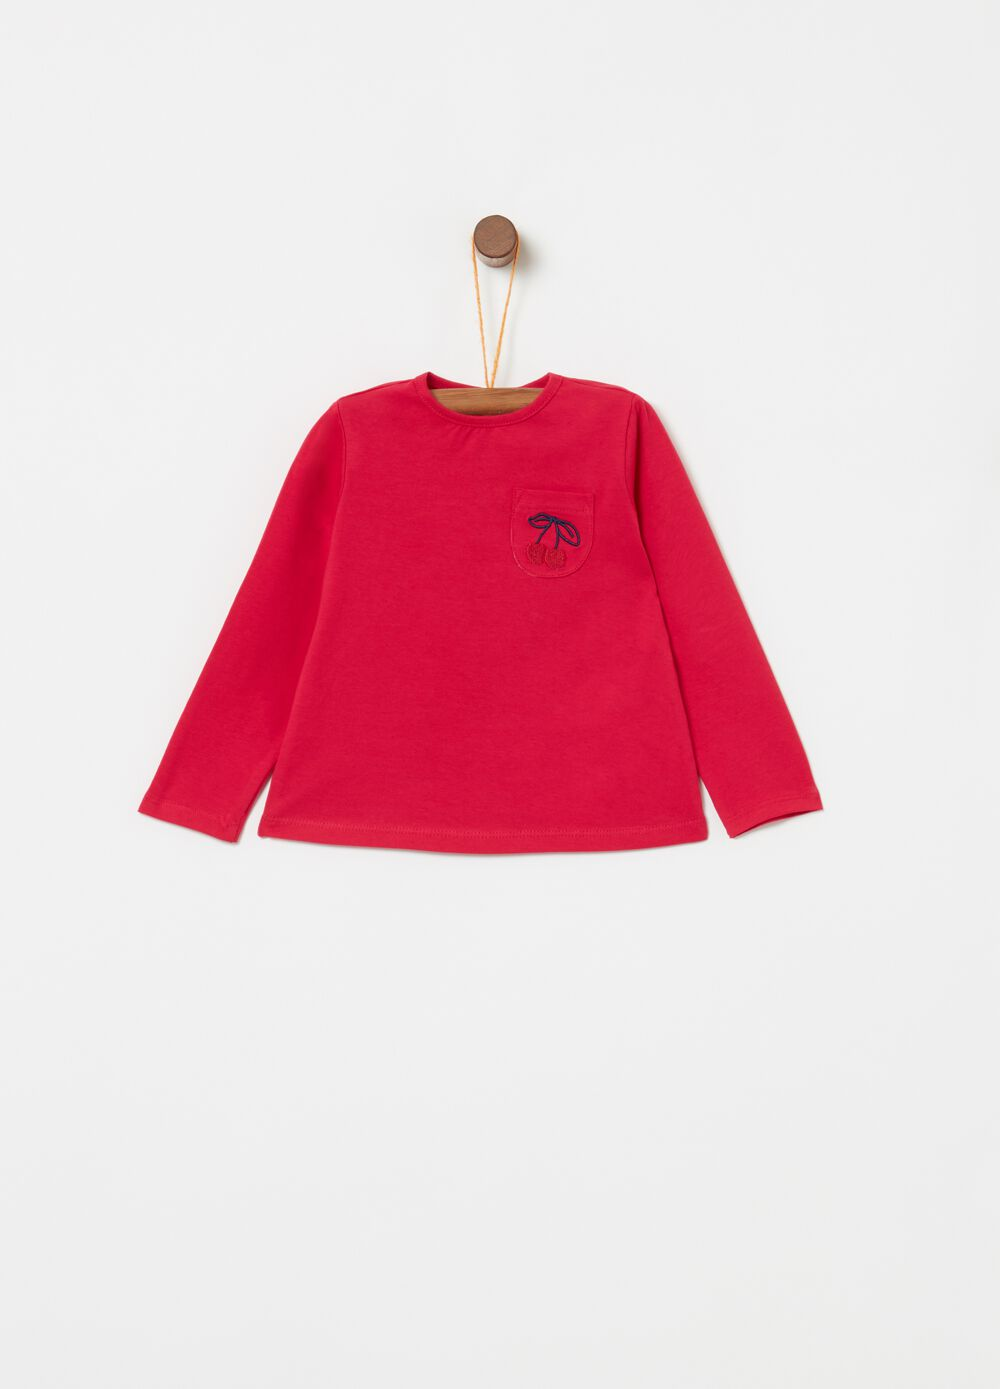 T-shirt with long sleeves, pocket and embroidery